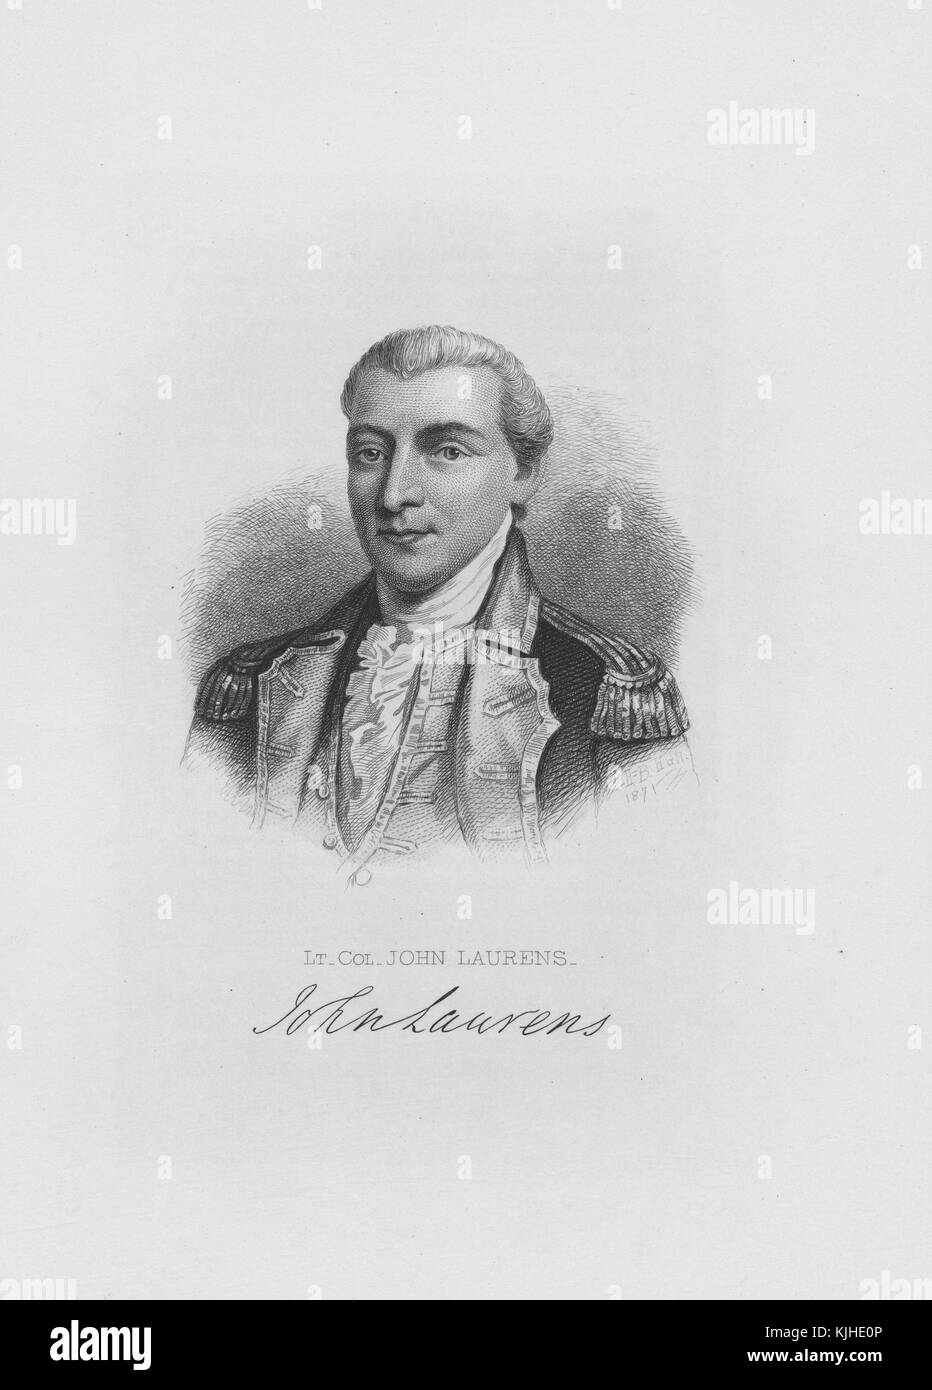 Engraved portrait of John Laurens, American soldier and statesman from South Carolina during the American Revolutionary - Stock Image